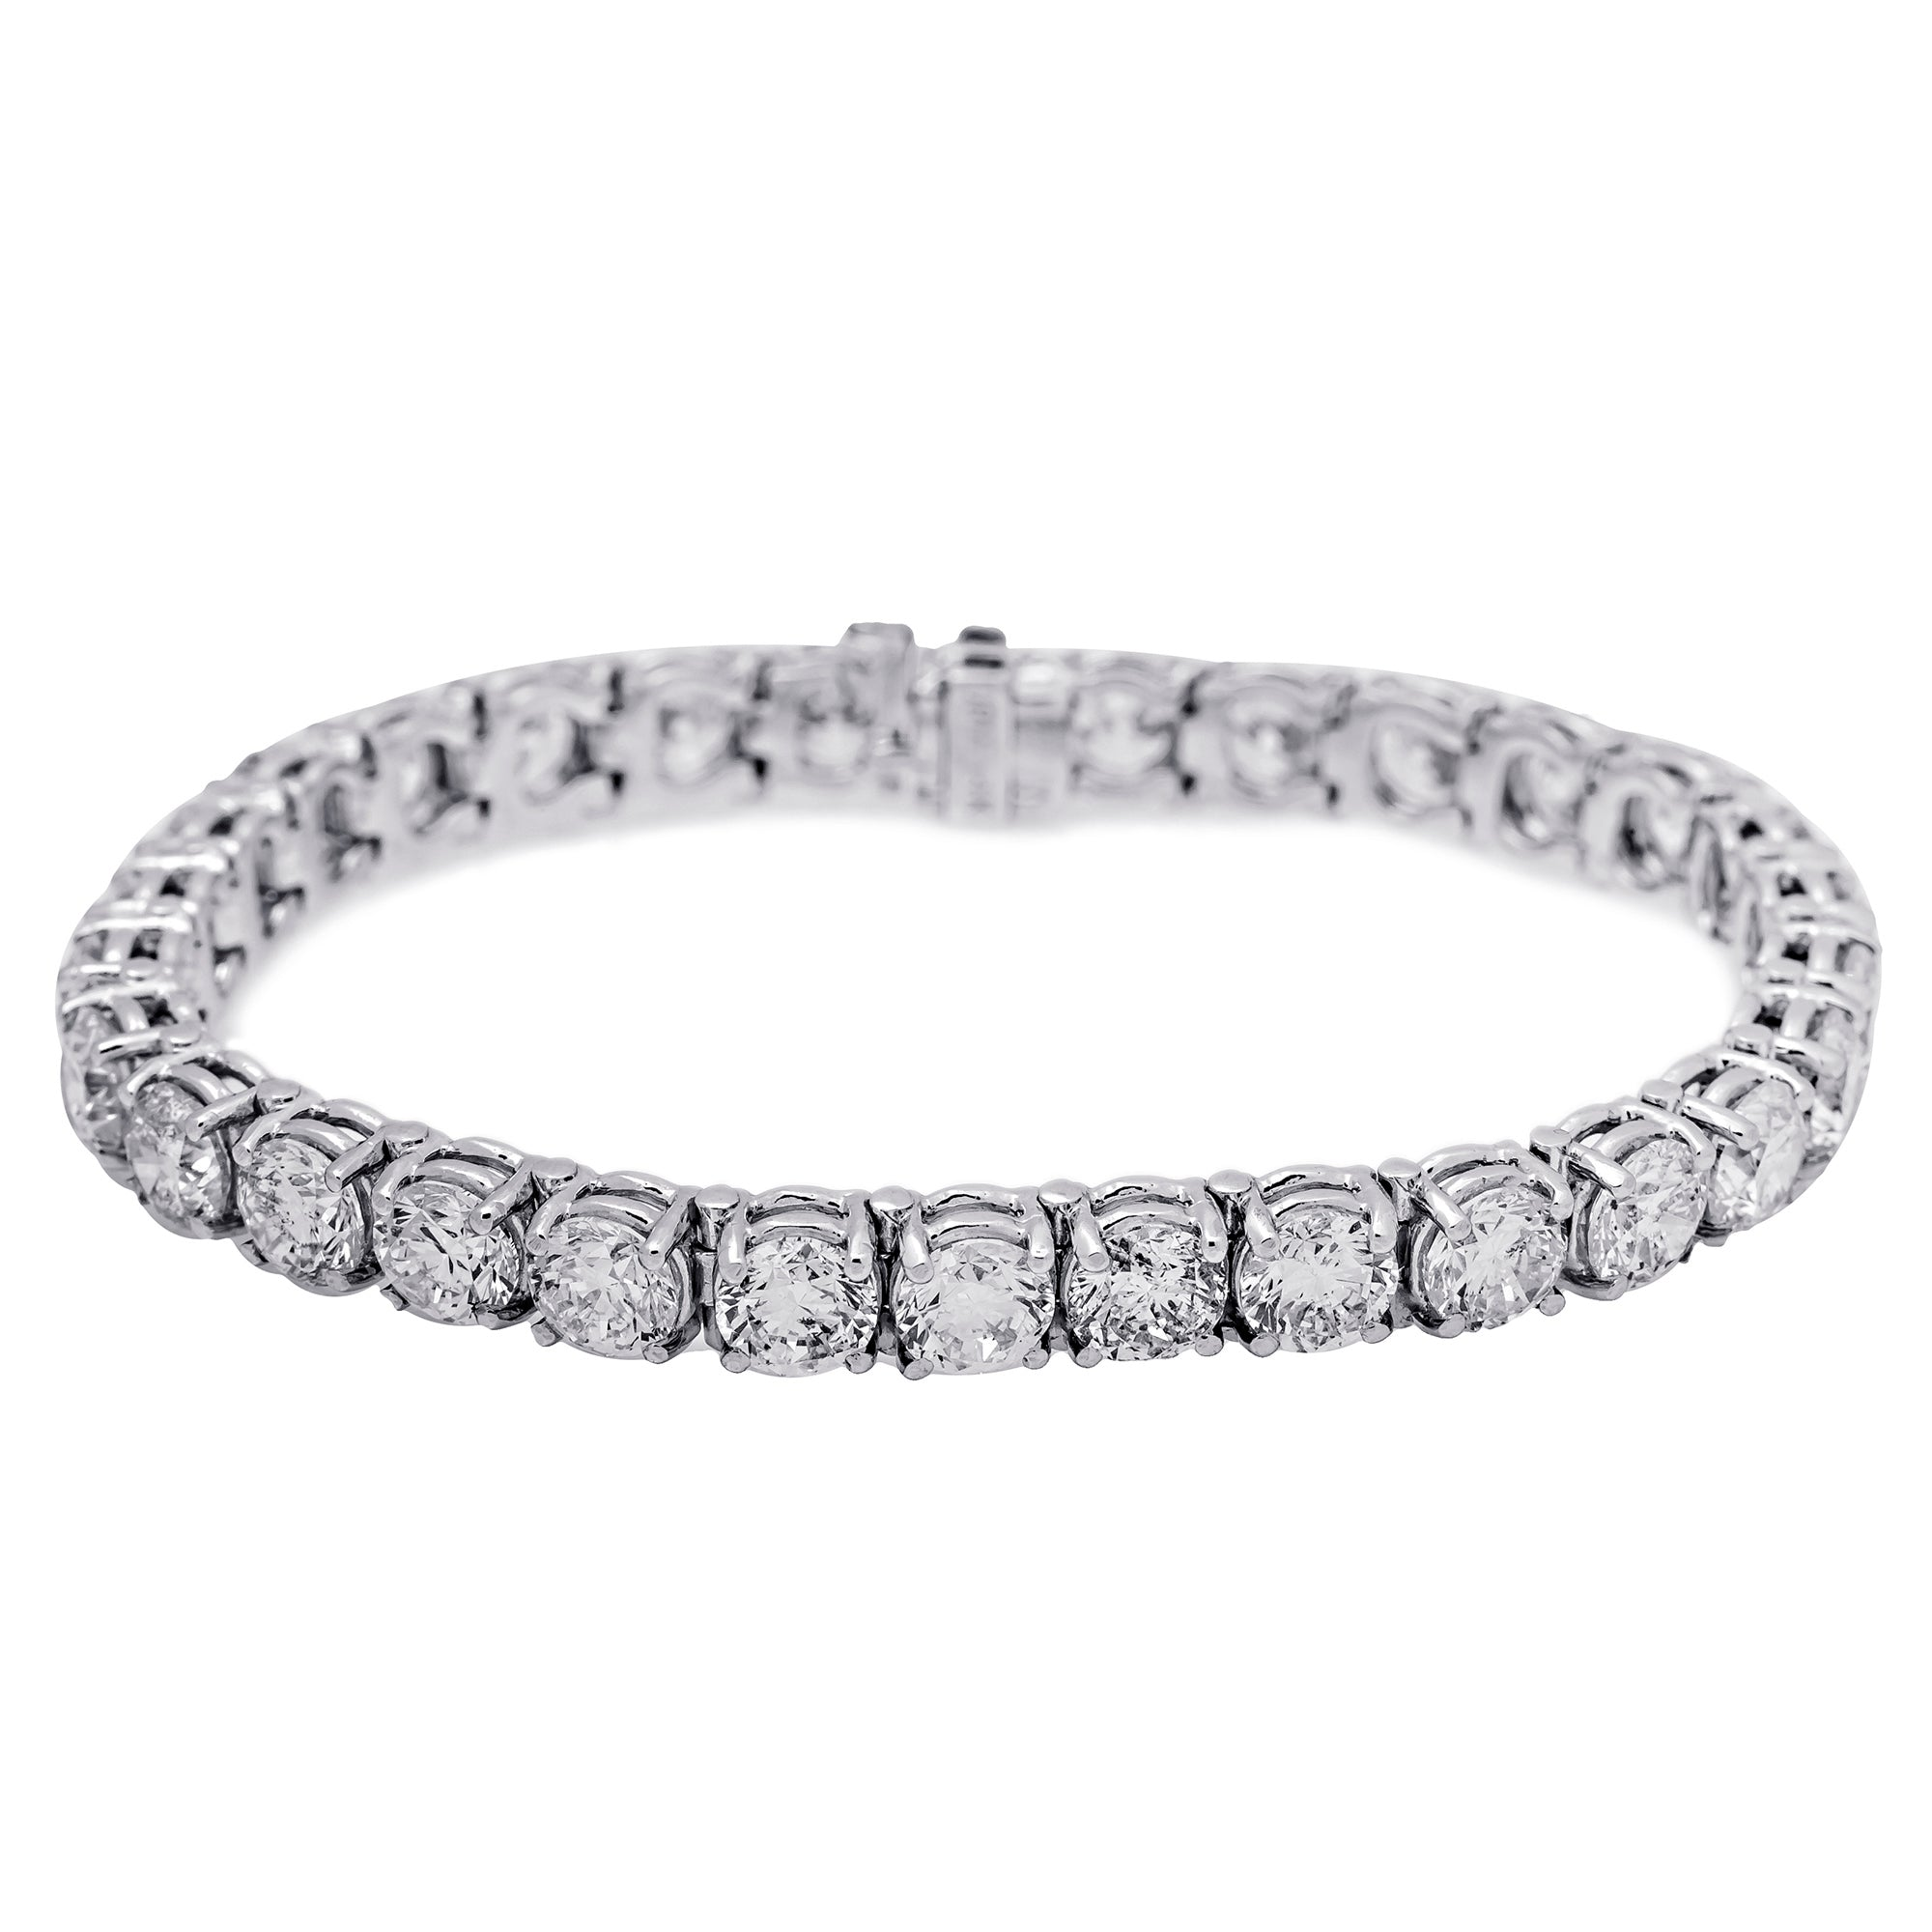 14K WHITE GOLD UNISEX BRACELET WITH 21.25 CT  DIAMONDS